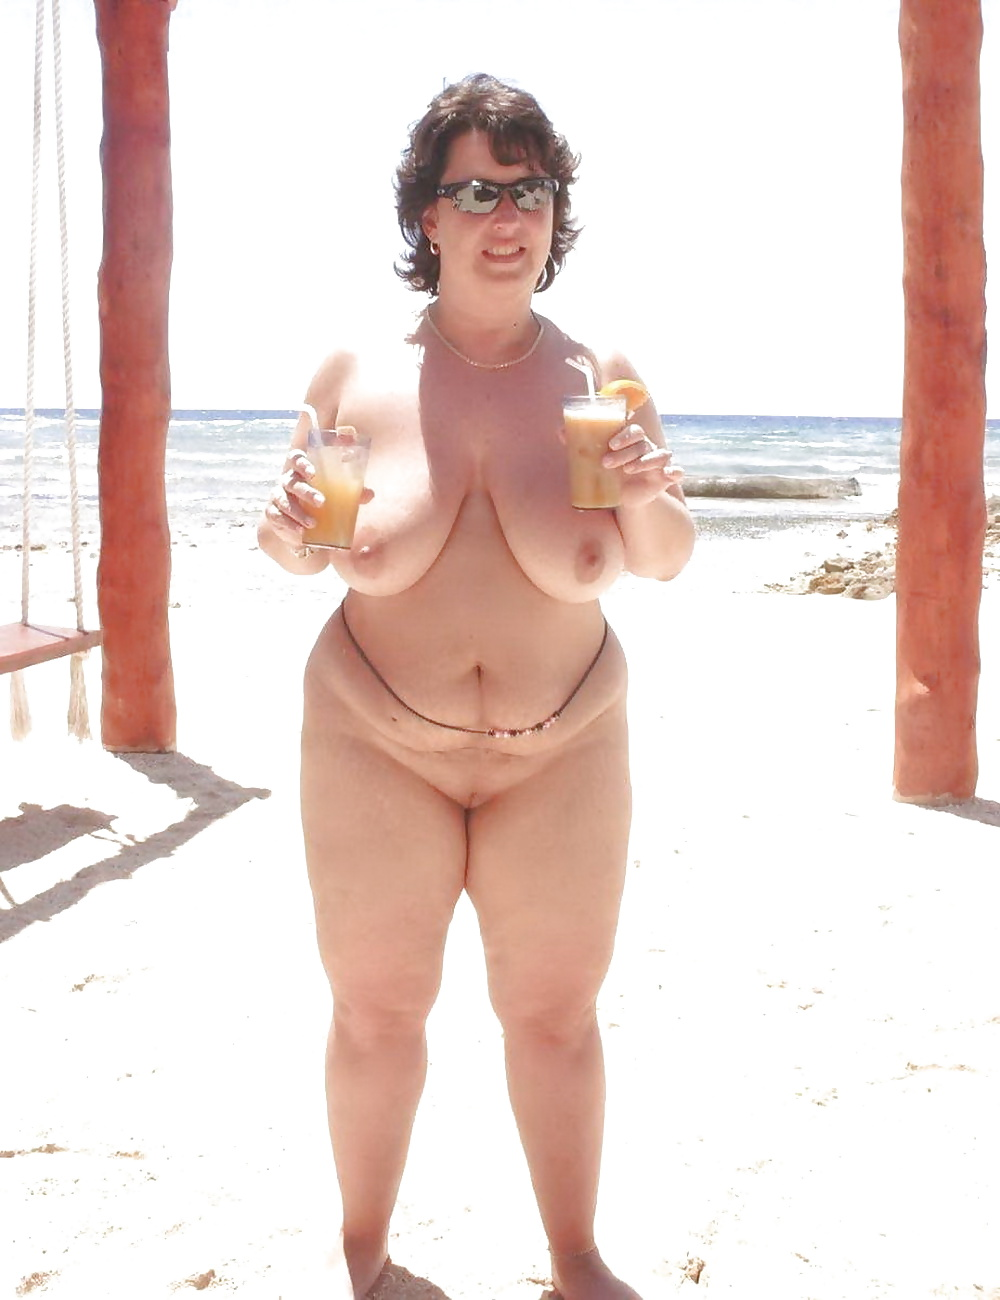 chubby-mom-at-beach-nude-sexy-girls-girls